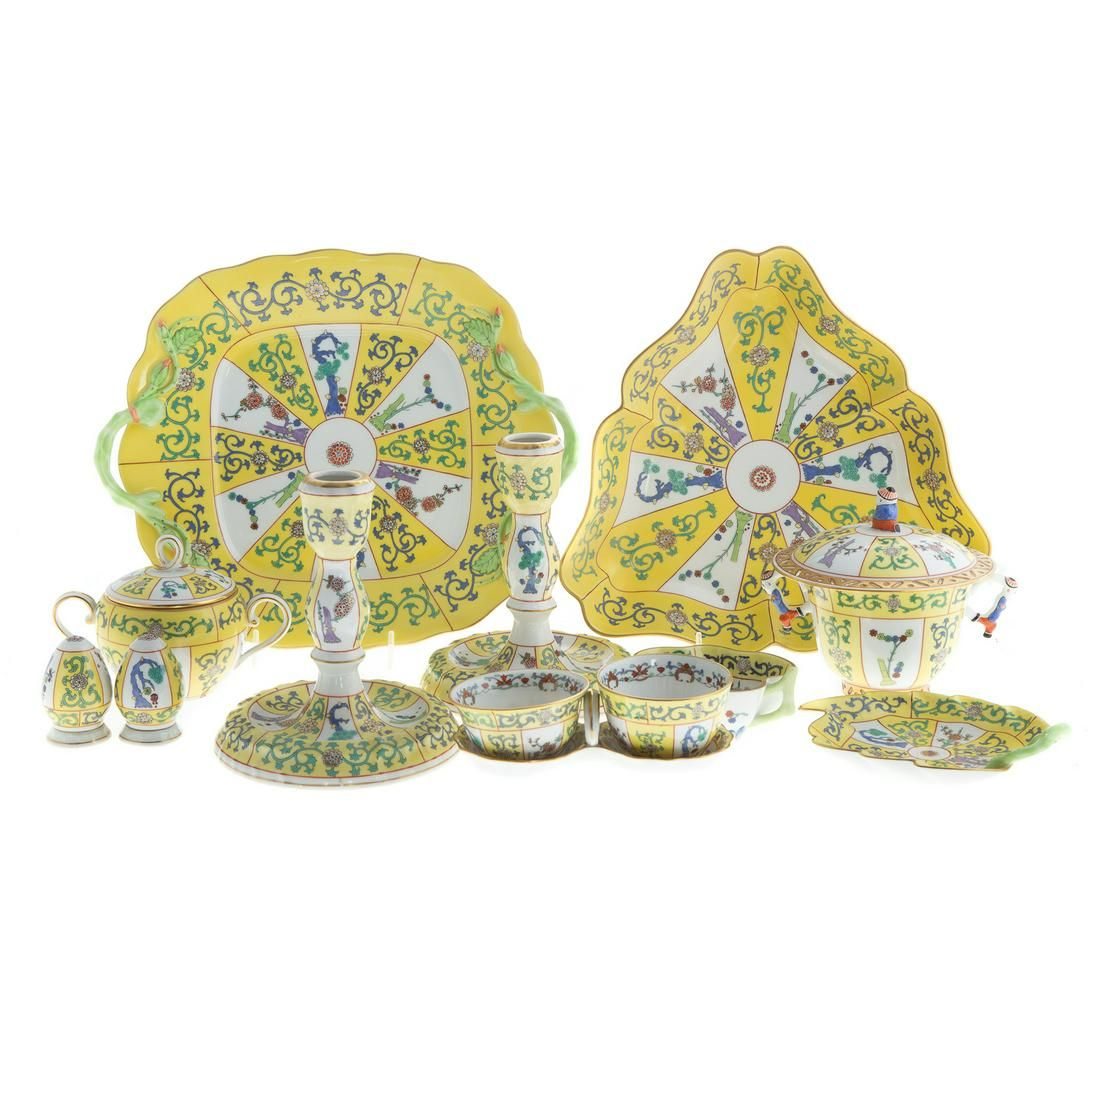 13 Herend Porcelain, Yellow Dynasty Table Articles